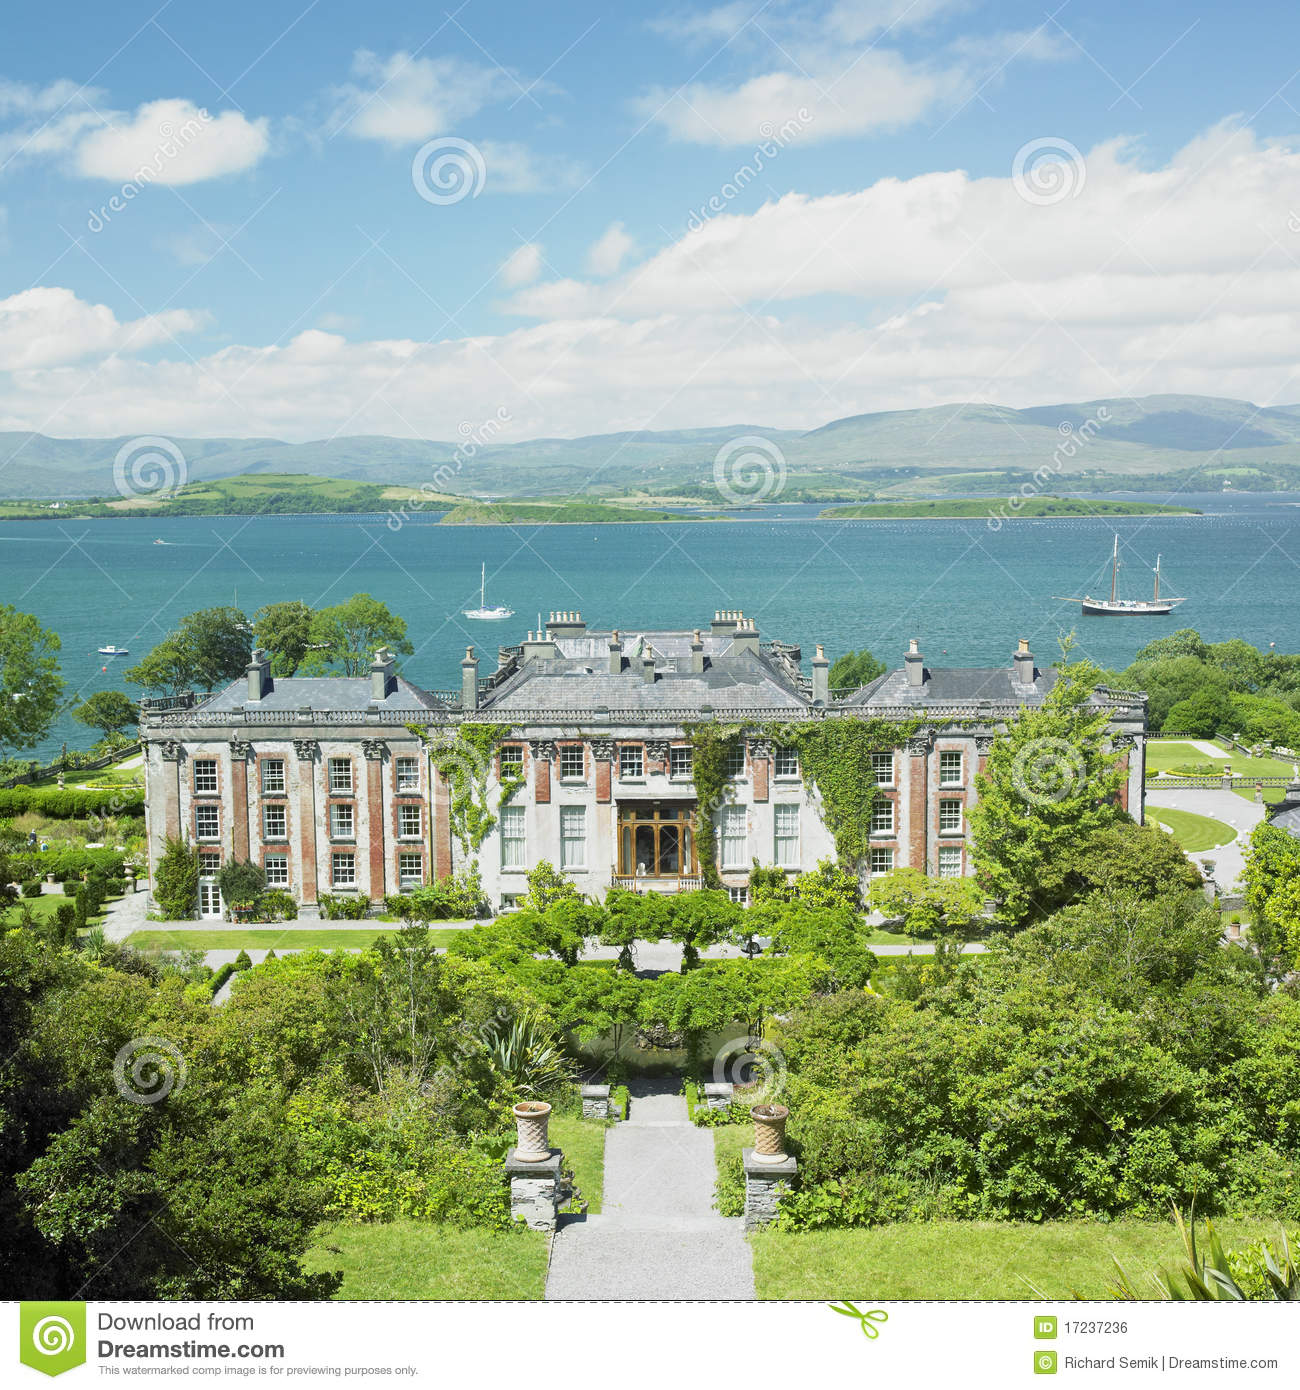 Bantry house stock photo image of palace building for Bantry house